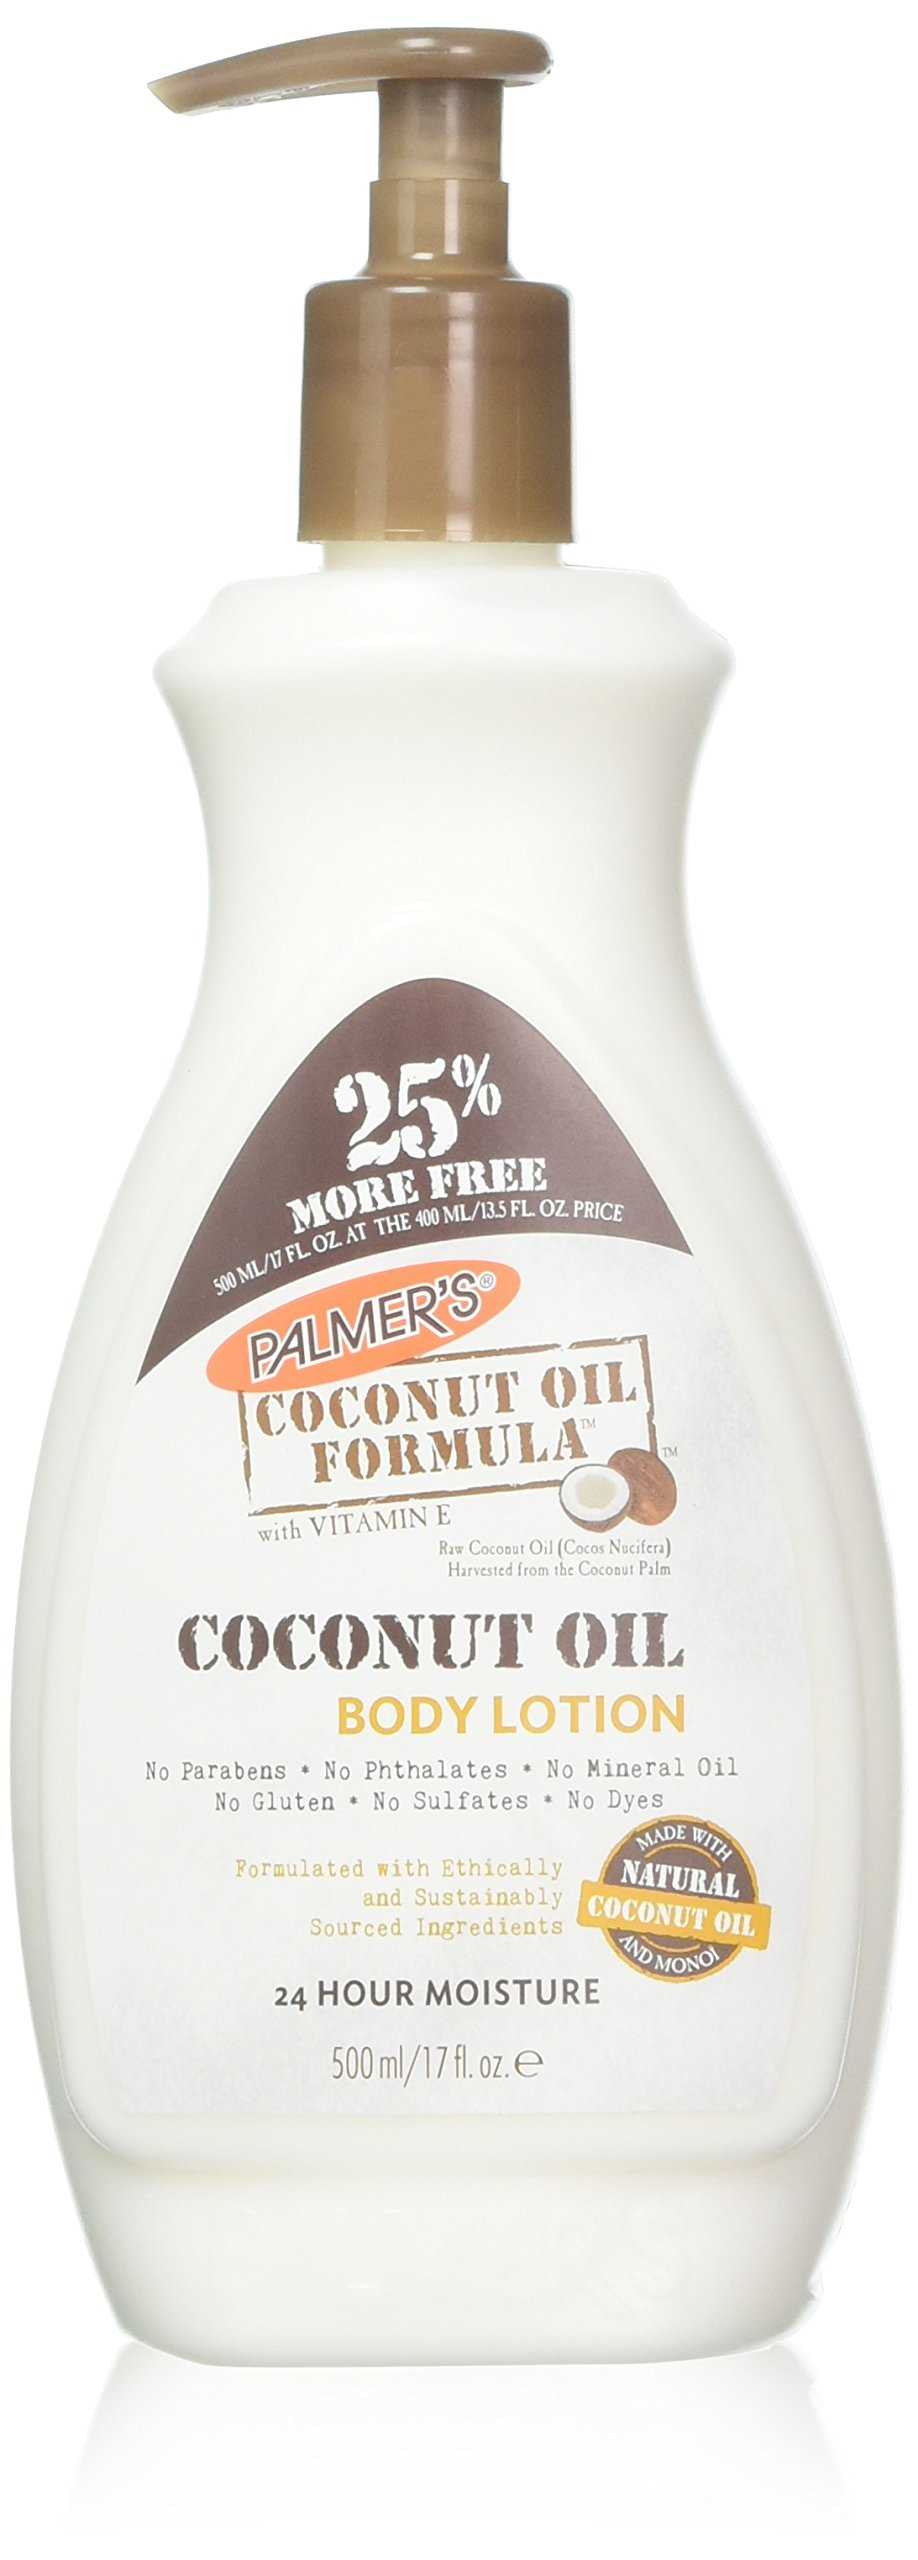 Palmers Coconut Oil Body Lotion 17 Ounce (500ml)